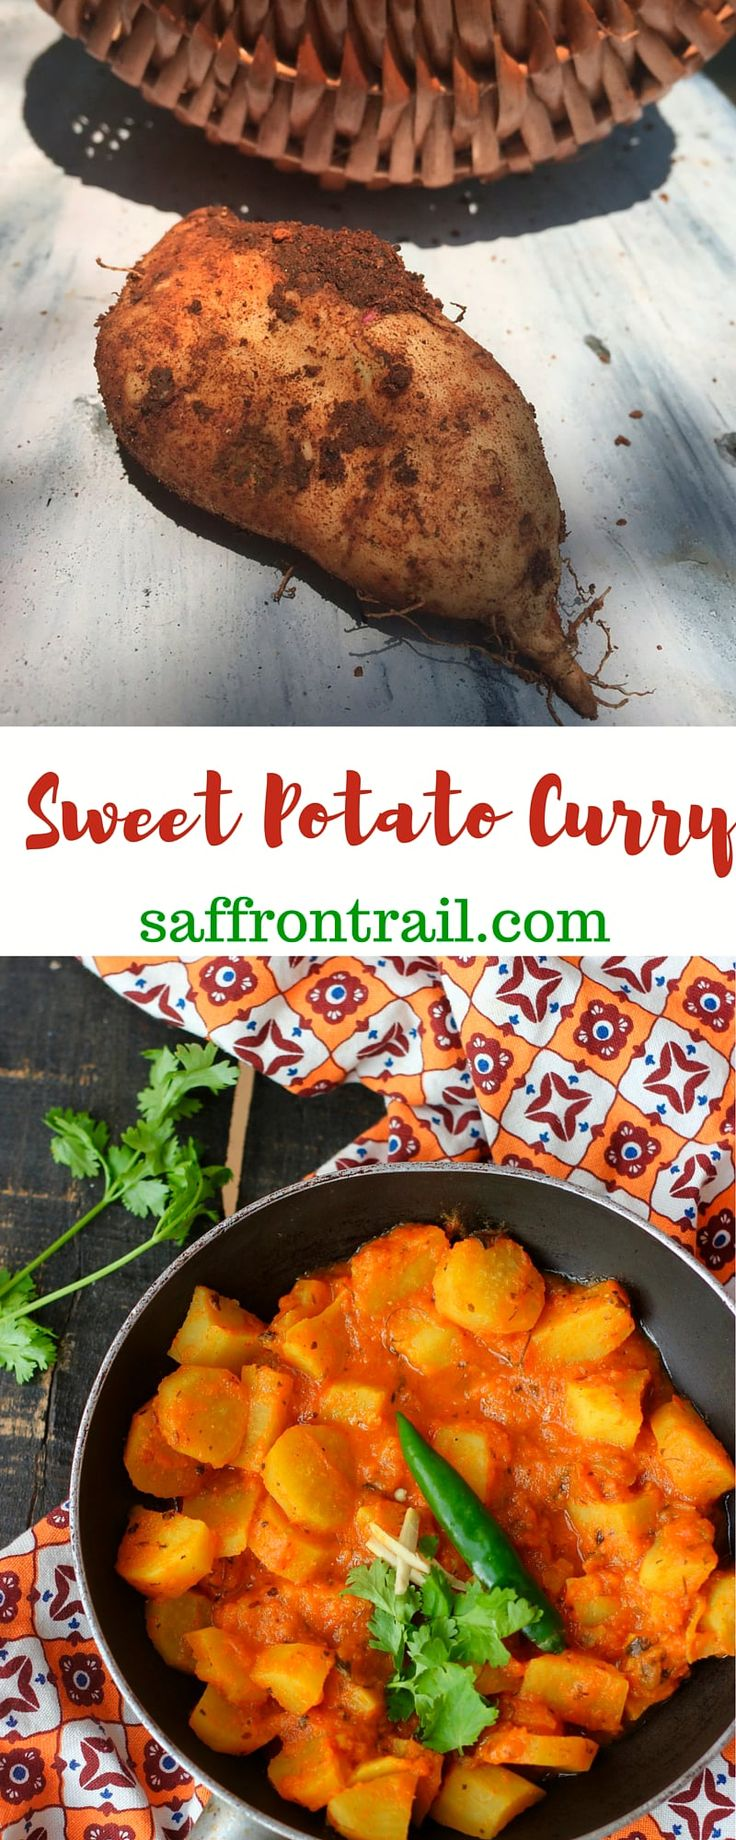 A mildly spicy North Indian style Sweet Potato Curry that you can serve with rice or roti/ naan. The spices in the curry add lots of flavour to the mild tasting sweet potatoes. Ready in 20 minutes!